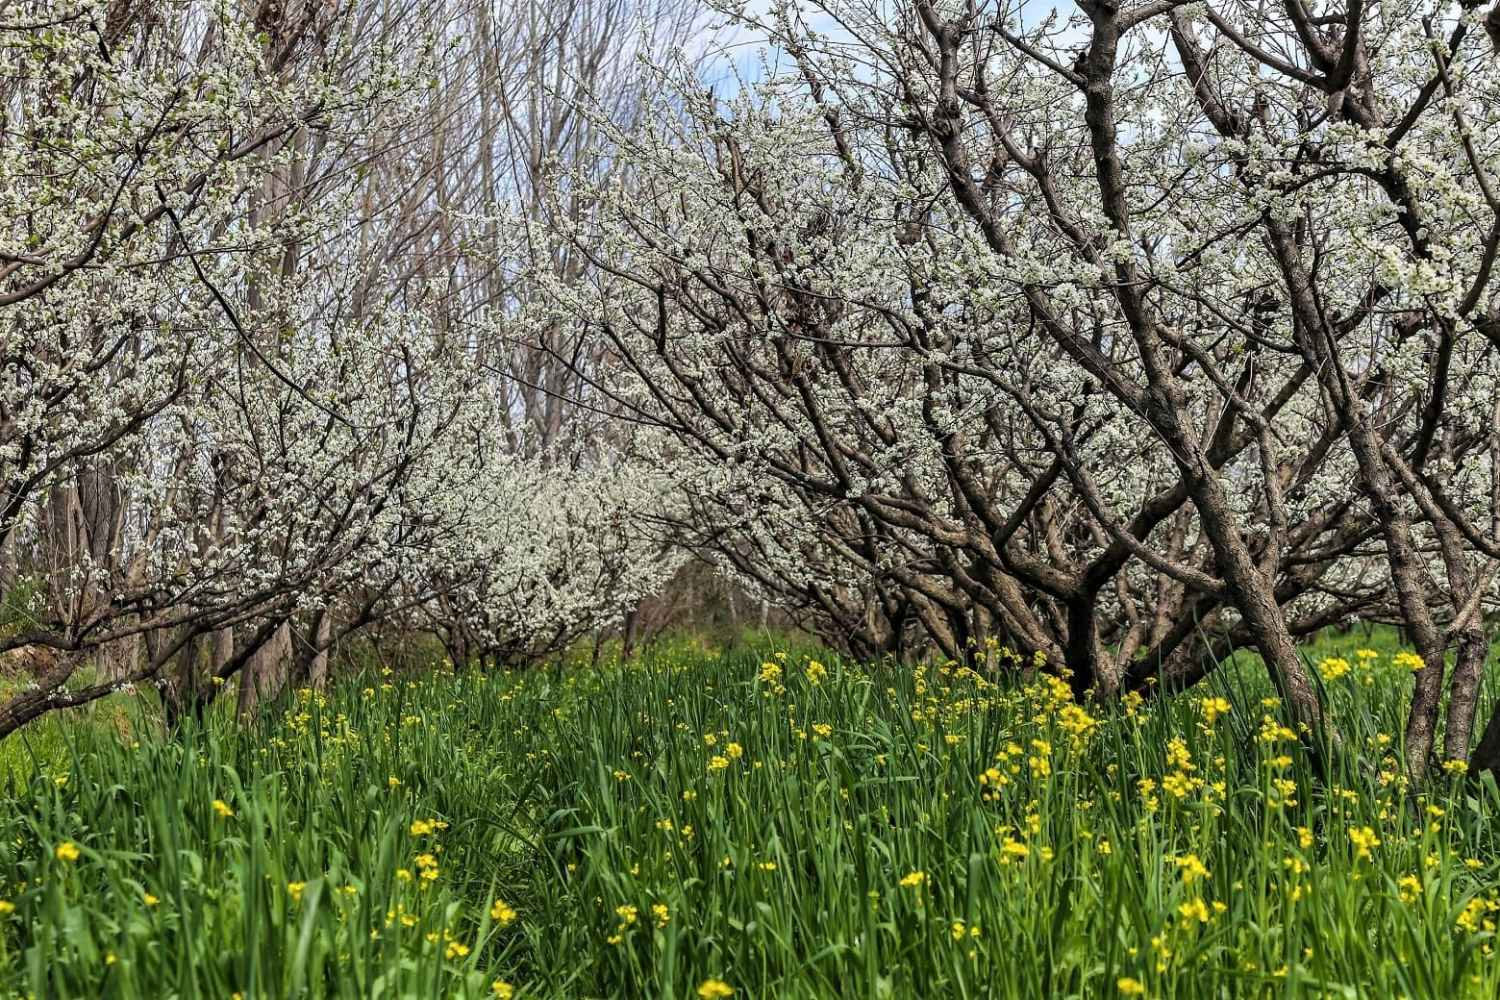 Arrival of spring in Swat valley